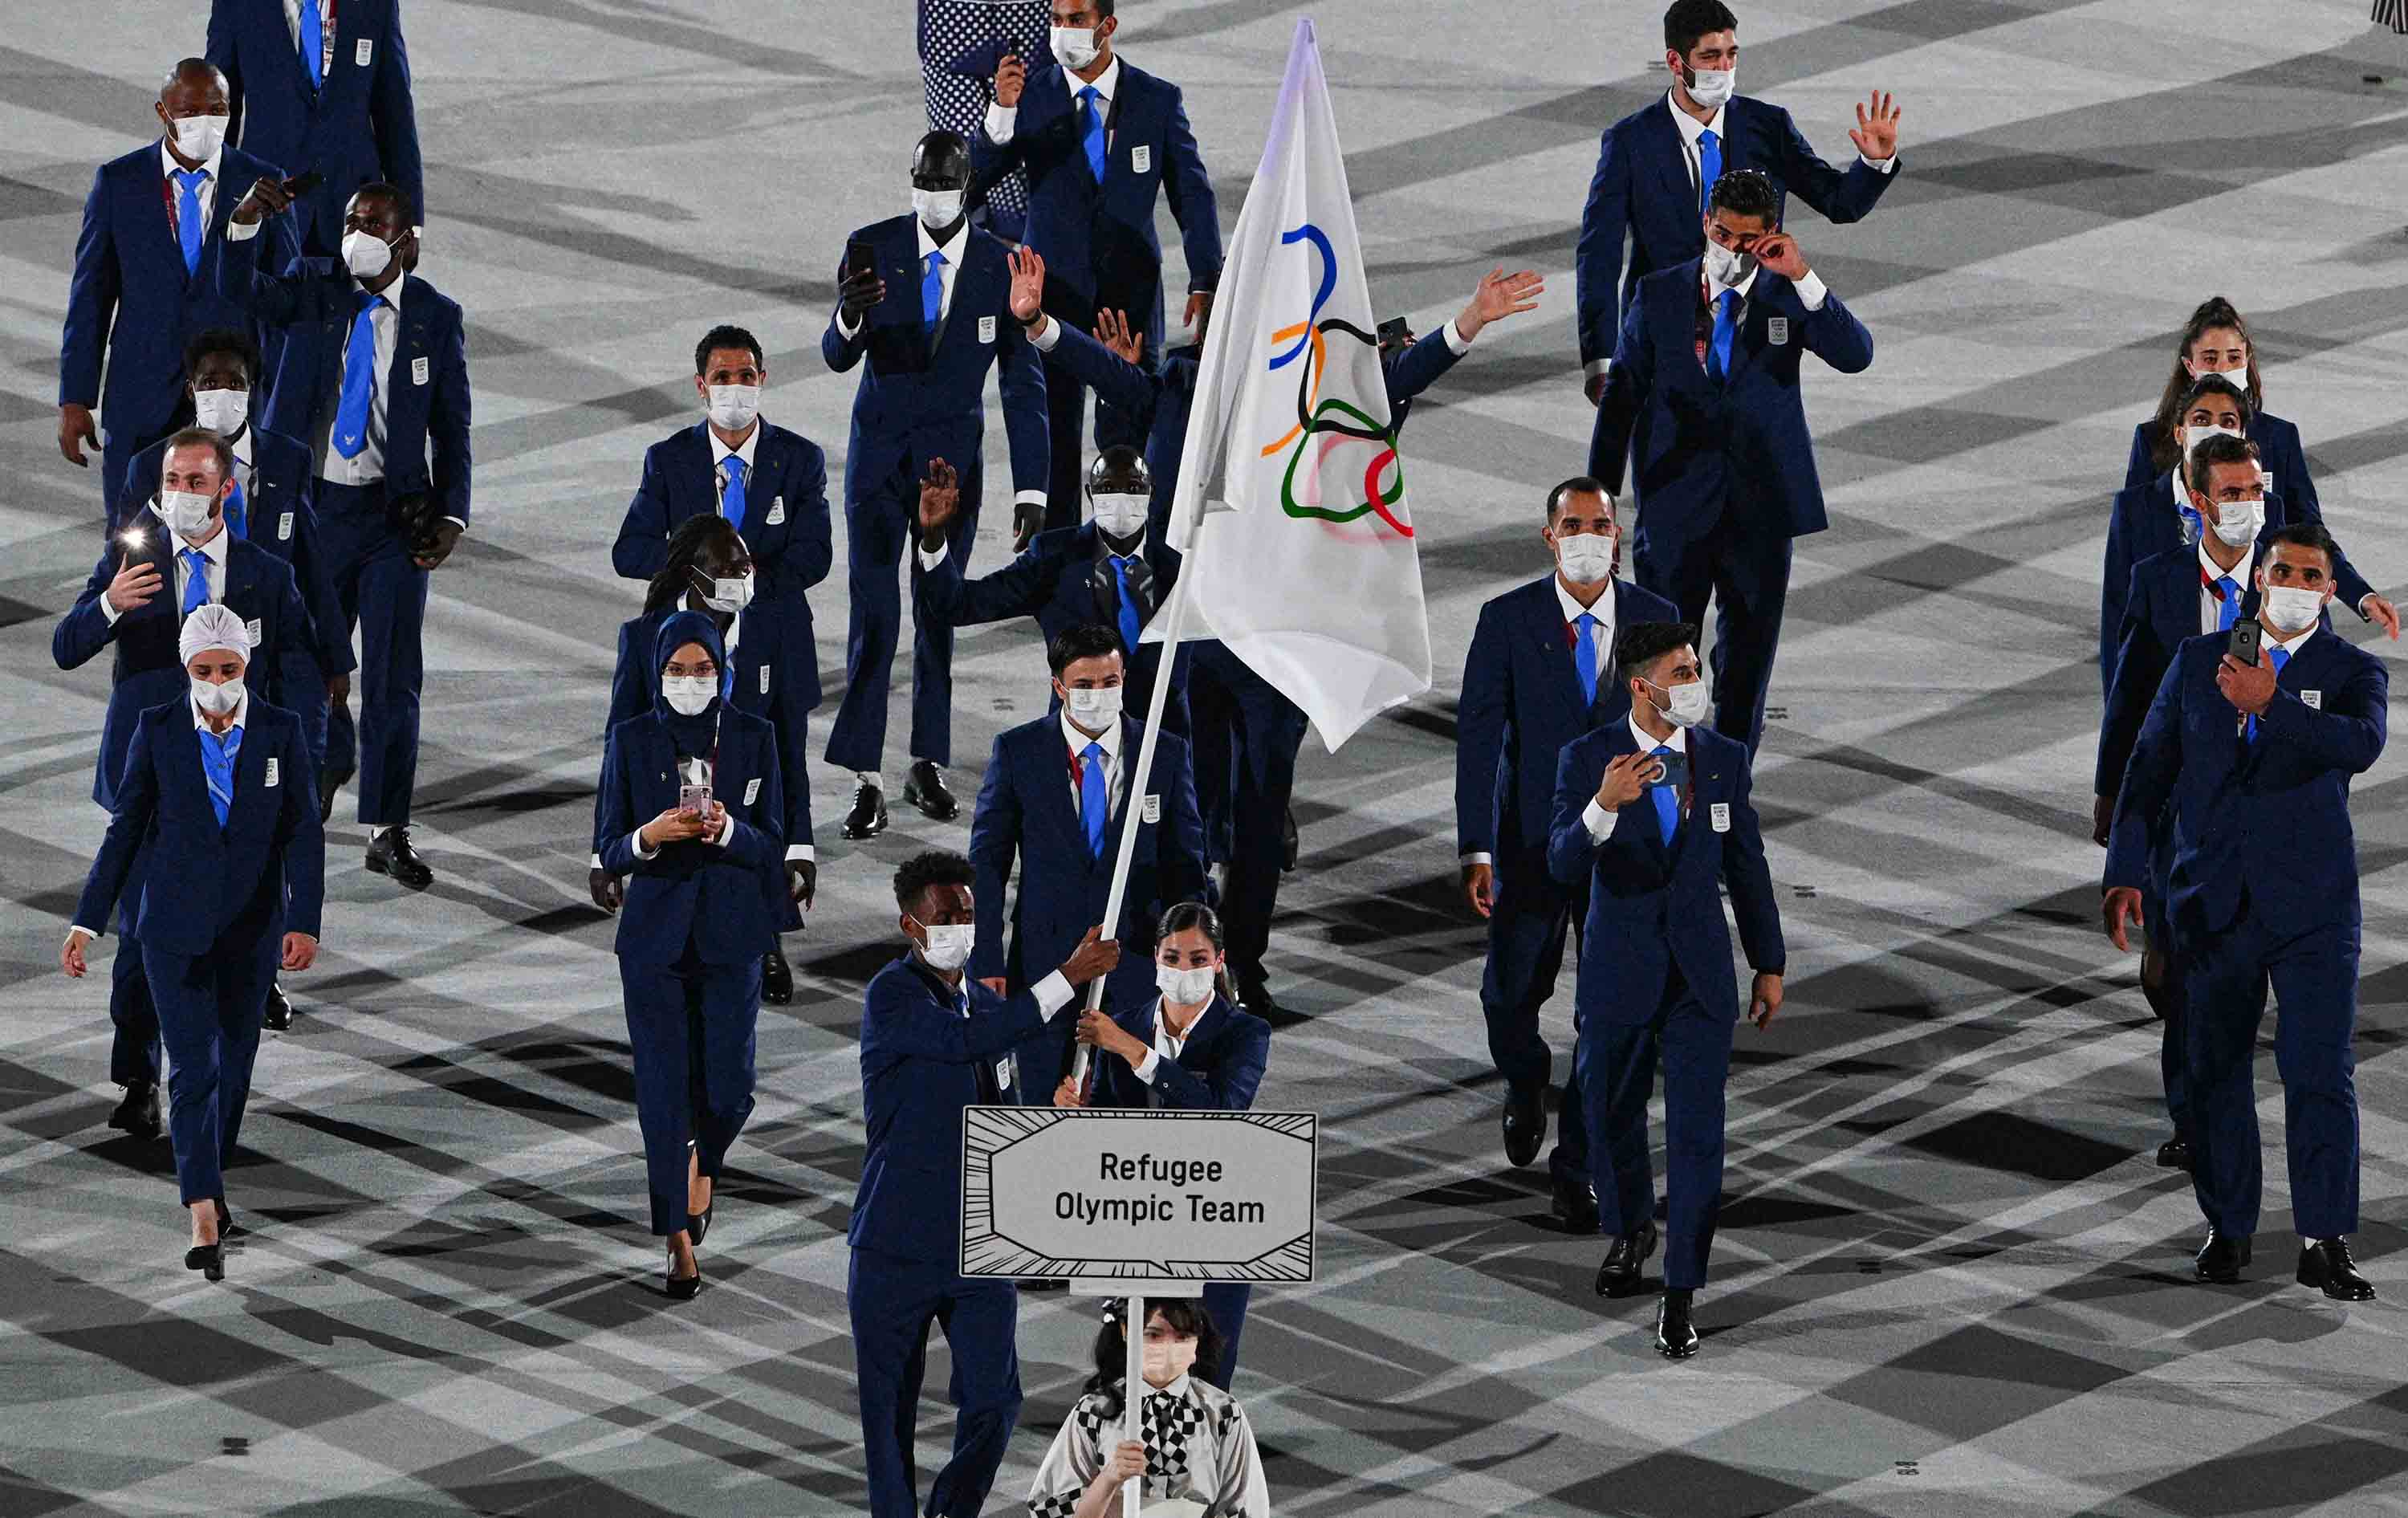 The Refugee Olympic Team parades during the Opening Ceremony.